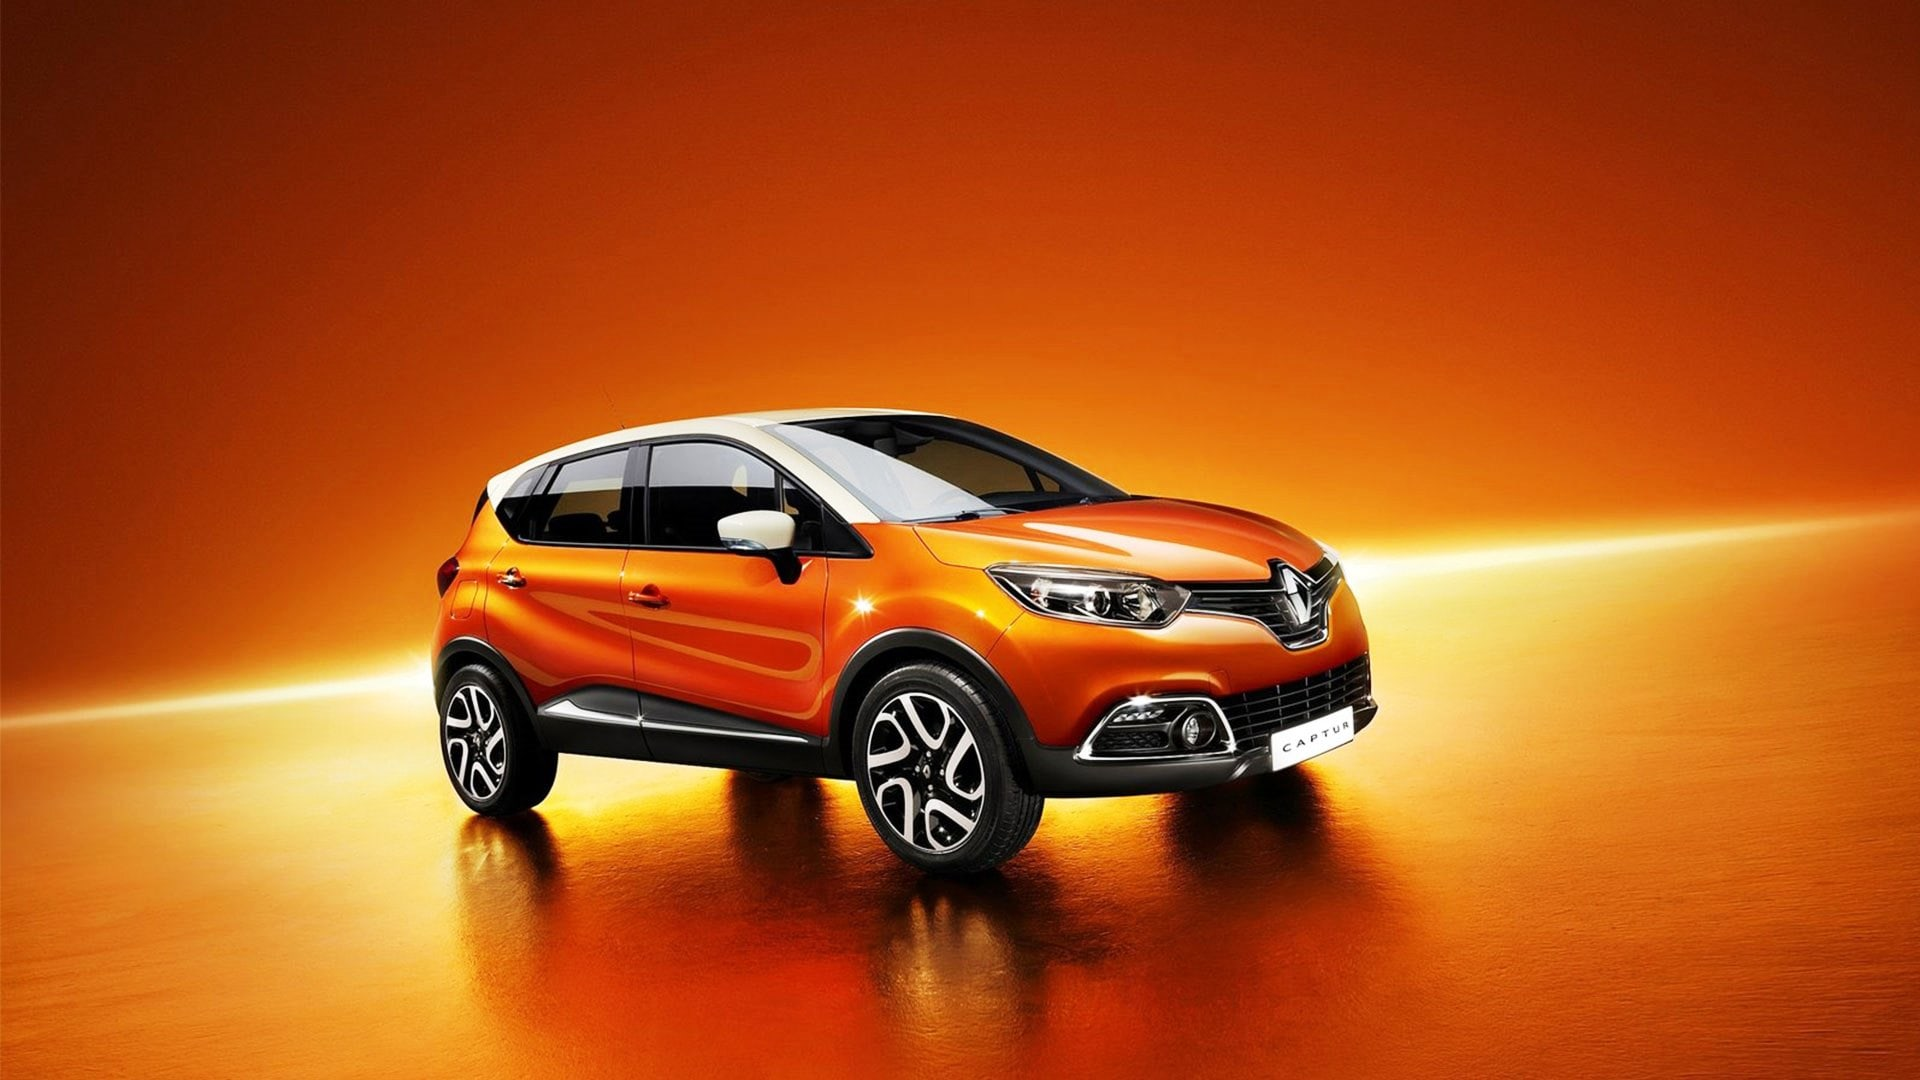 Renault Kaptur Wallpaper